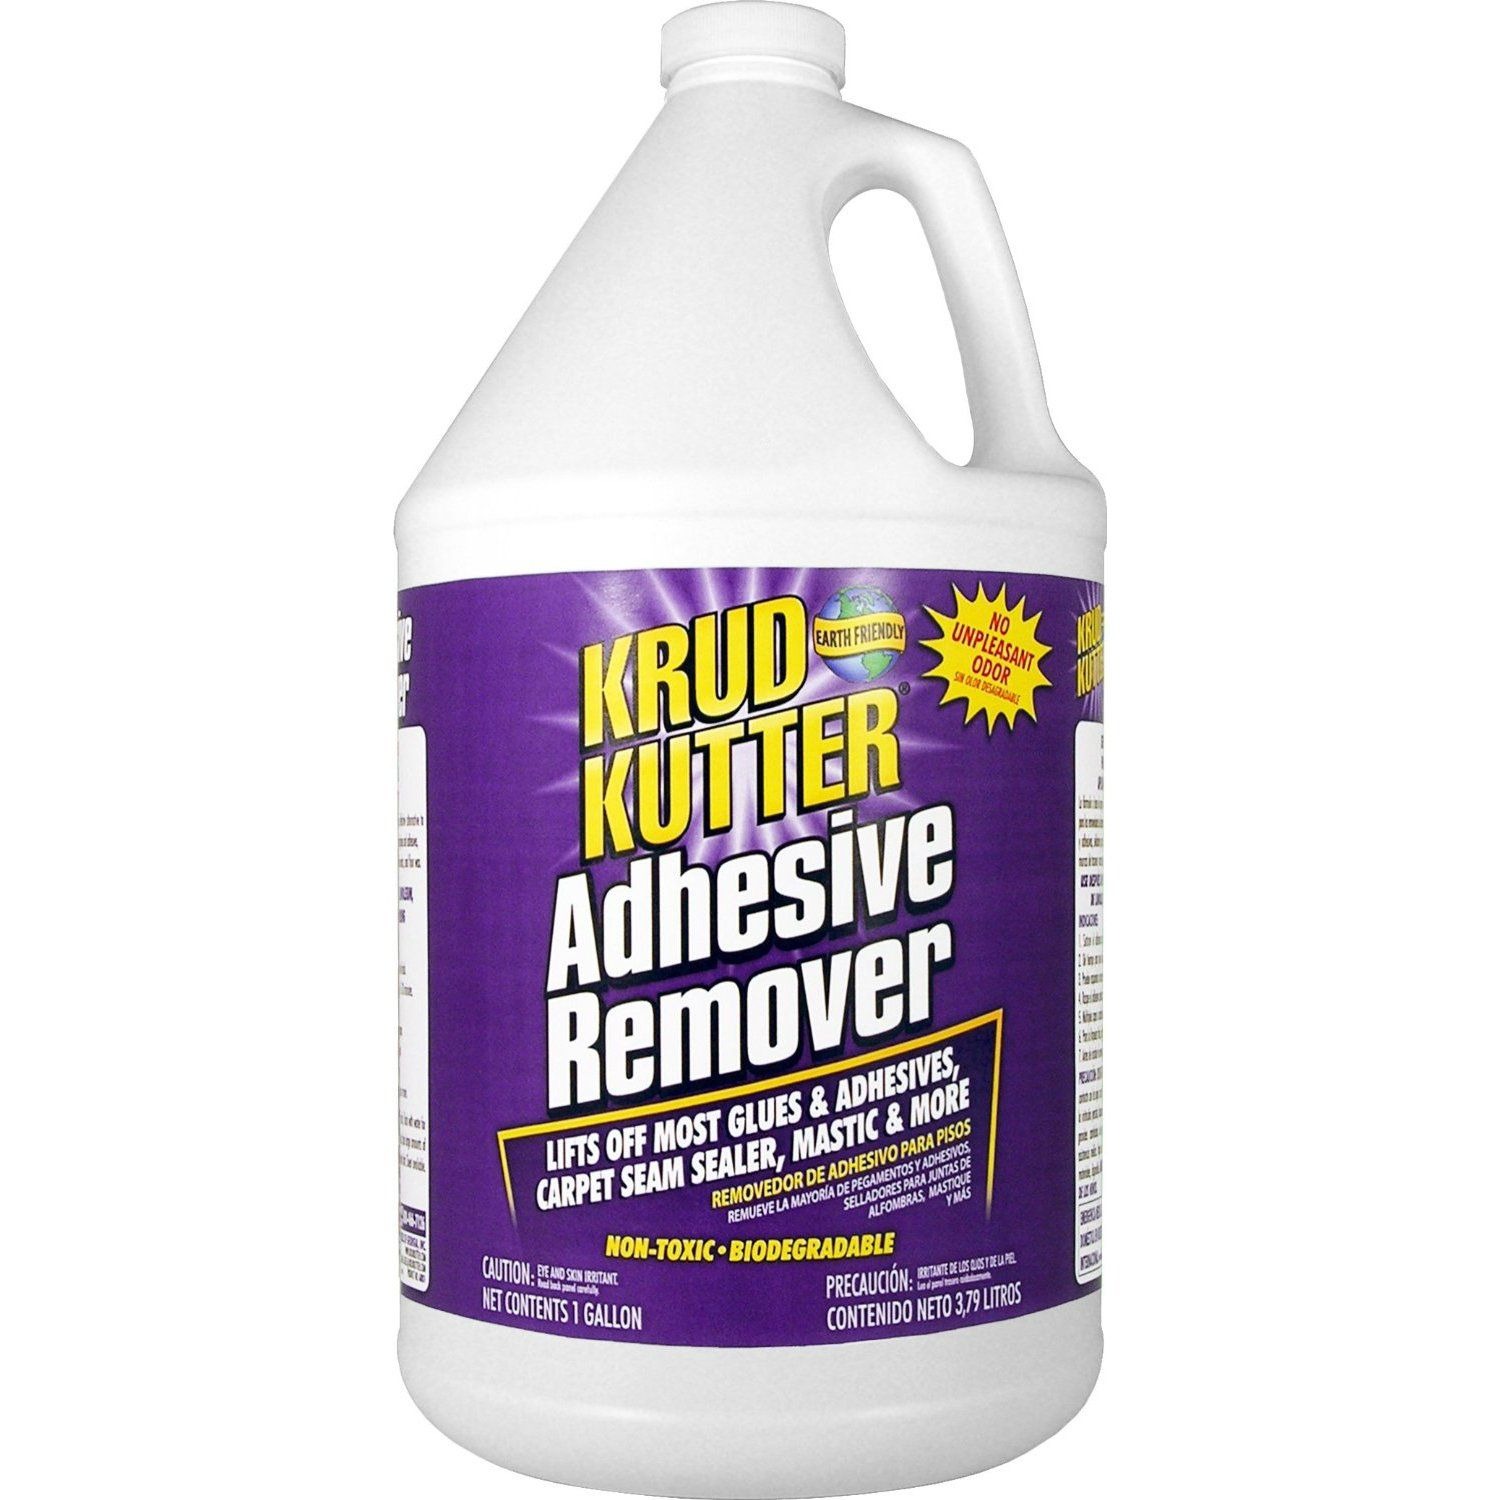 Krud Kutter AR014 Adhesive Remover, 1 Gallon How to